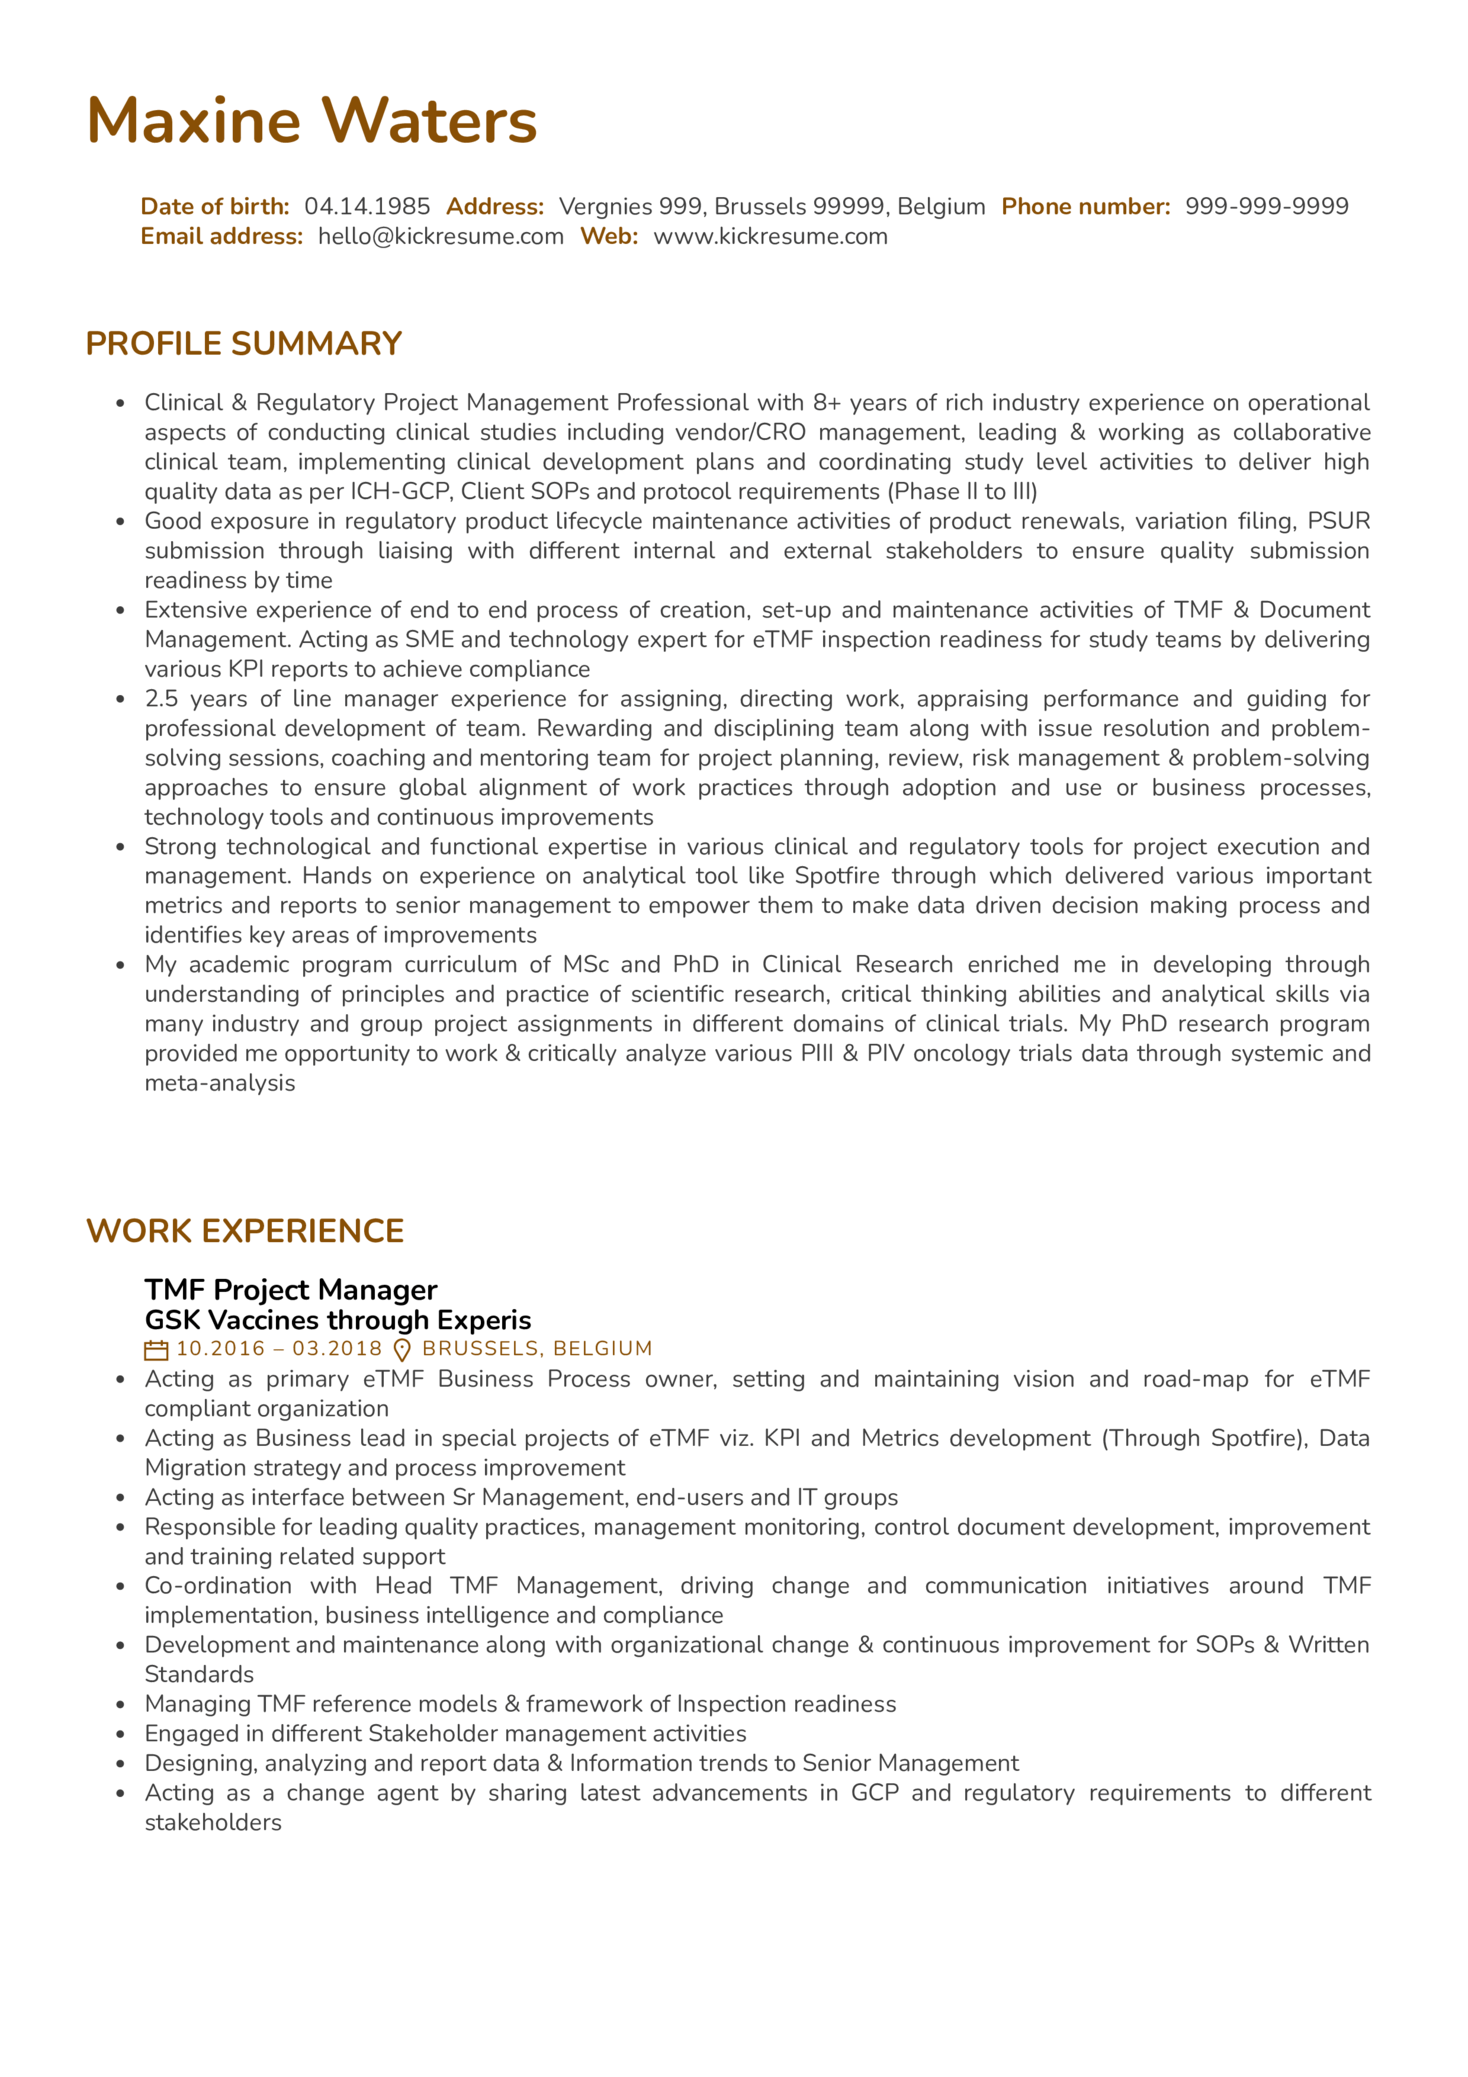 GlaxoSmithKline Manager Resume Example (Part 1)